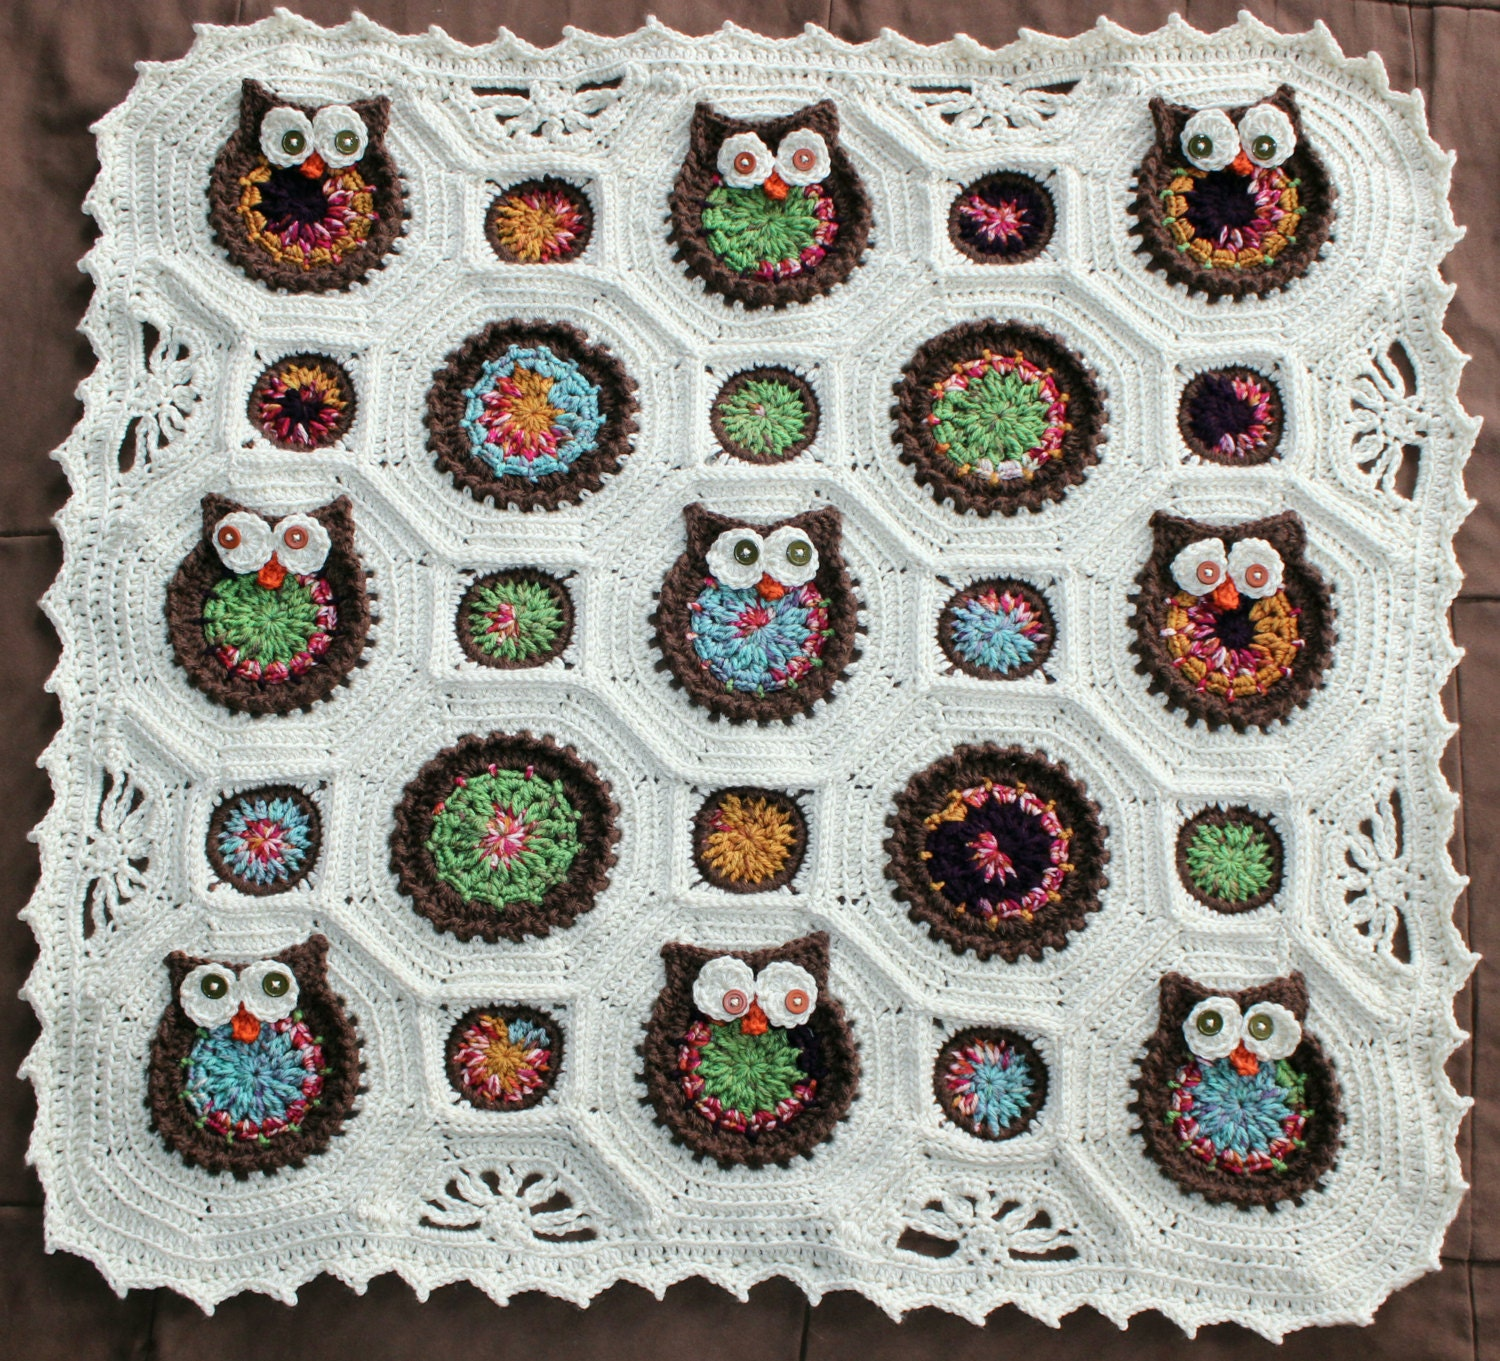 Crochet Owl Baby Blanket : Reserved for Tracey Dispoto Owl Crochet Baby by WiggleButtsJC